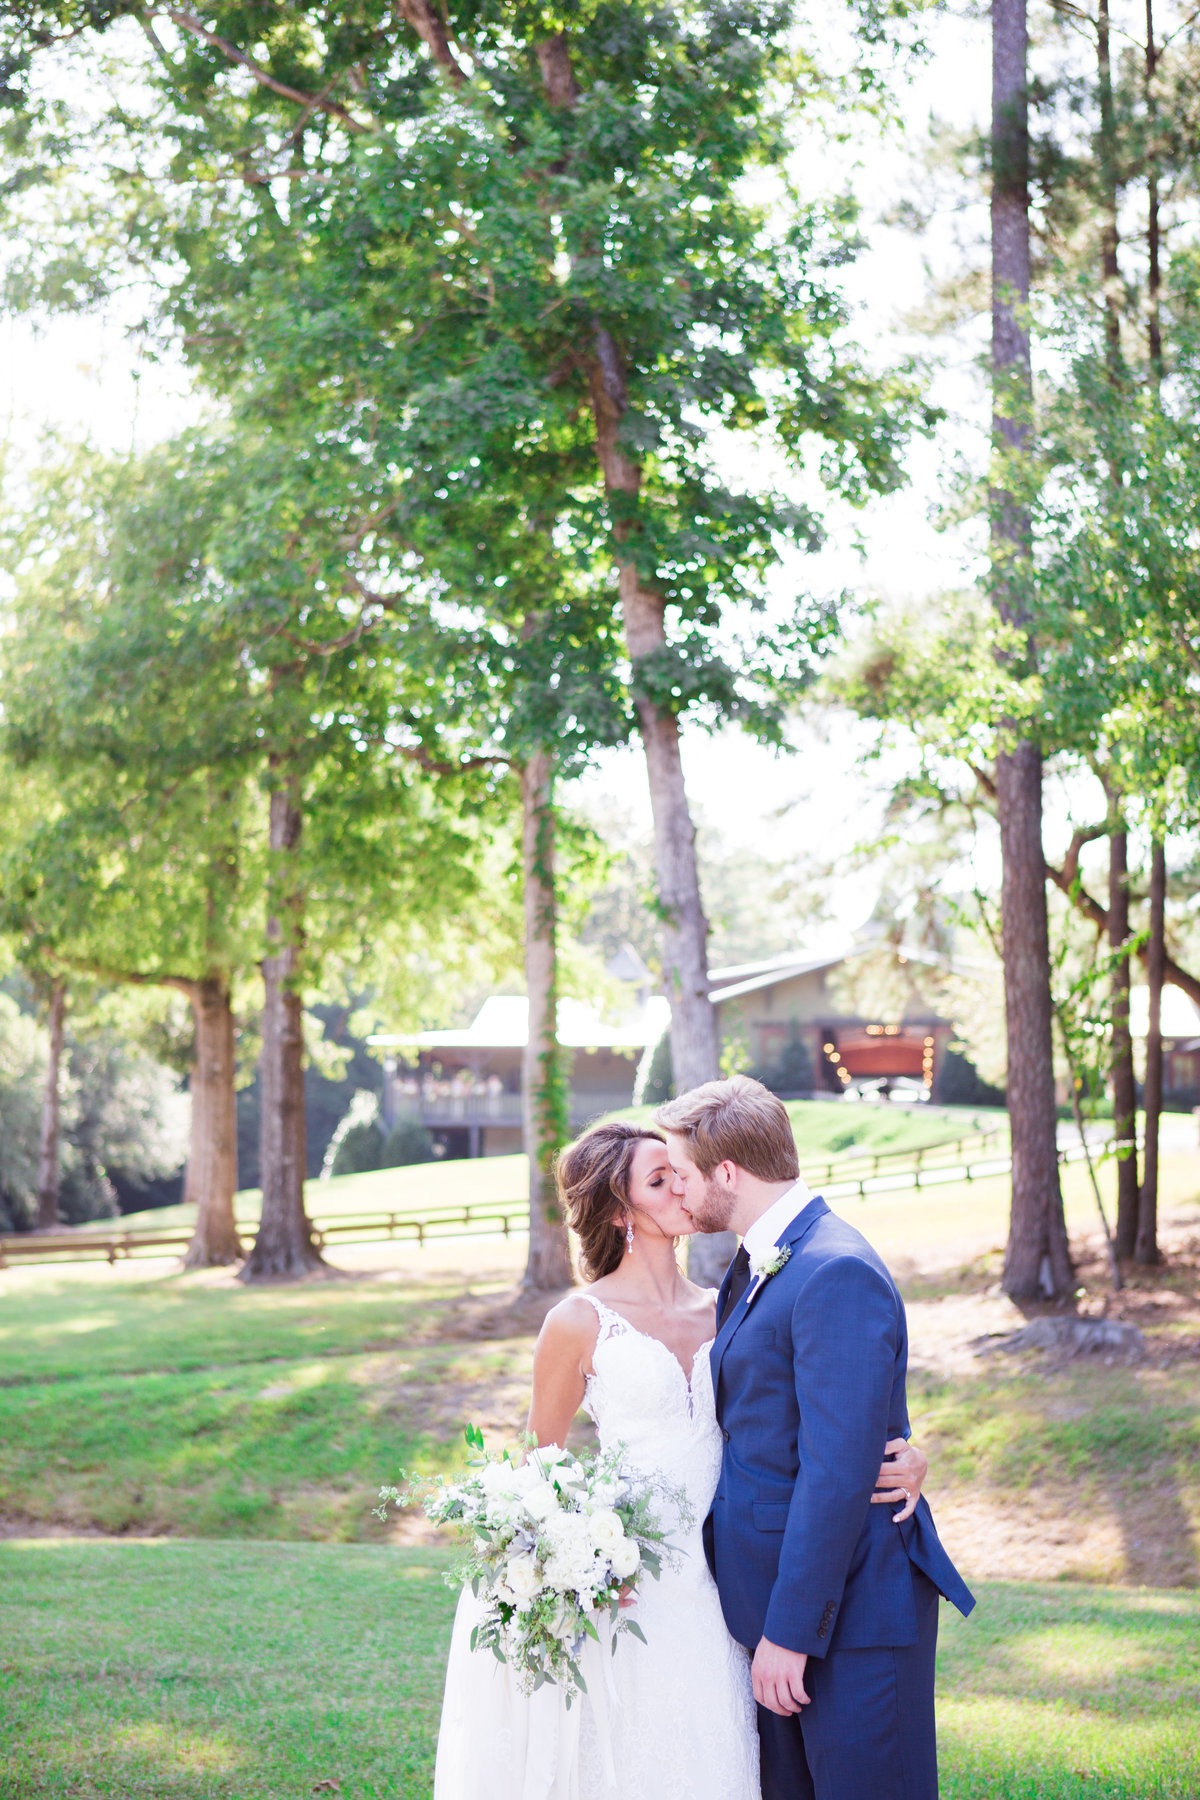 Windwood_Equestrian_Outdoor_Farm_Wedding_VenueBest_Birmingham74